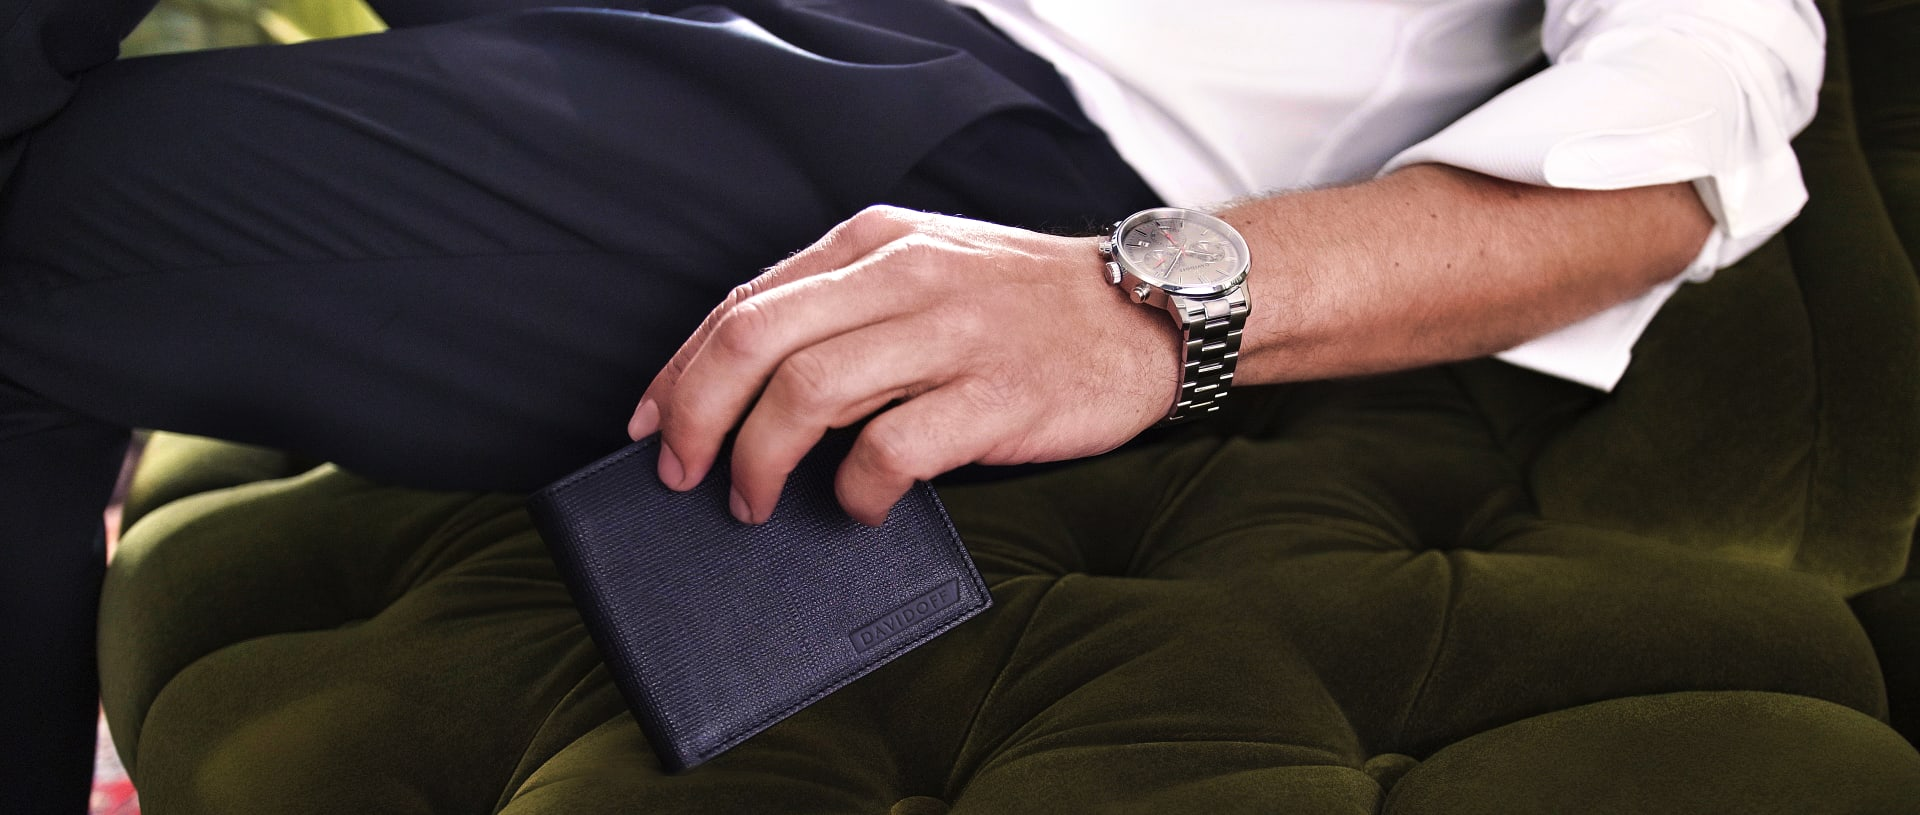 DAVIDOFF – Leather goods